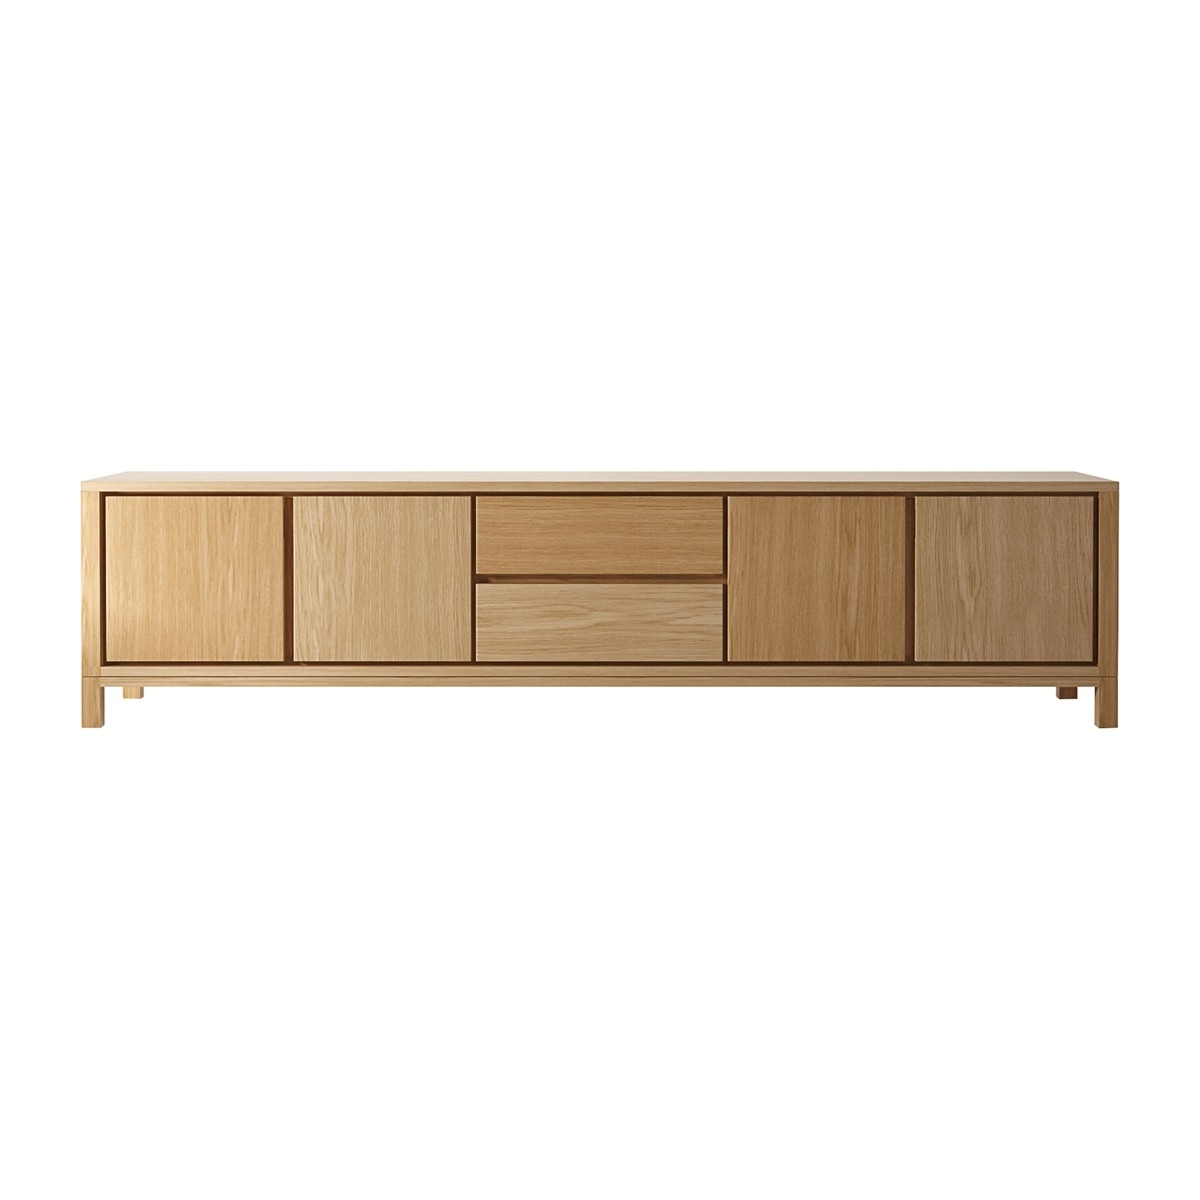 Karpenter – Solid Sideboard 2 Drawers & 4 Doors – Modern Sideboards Regarding 2 Drawer Sideboards (Gallery 21 of 30)